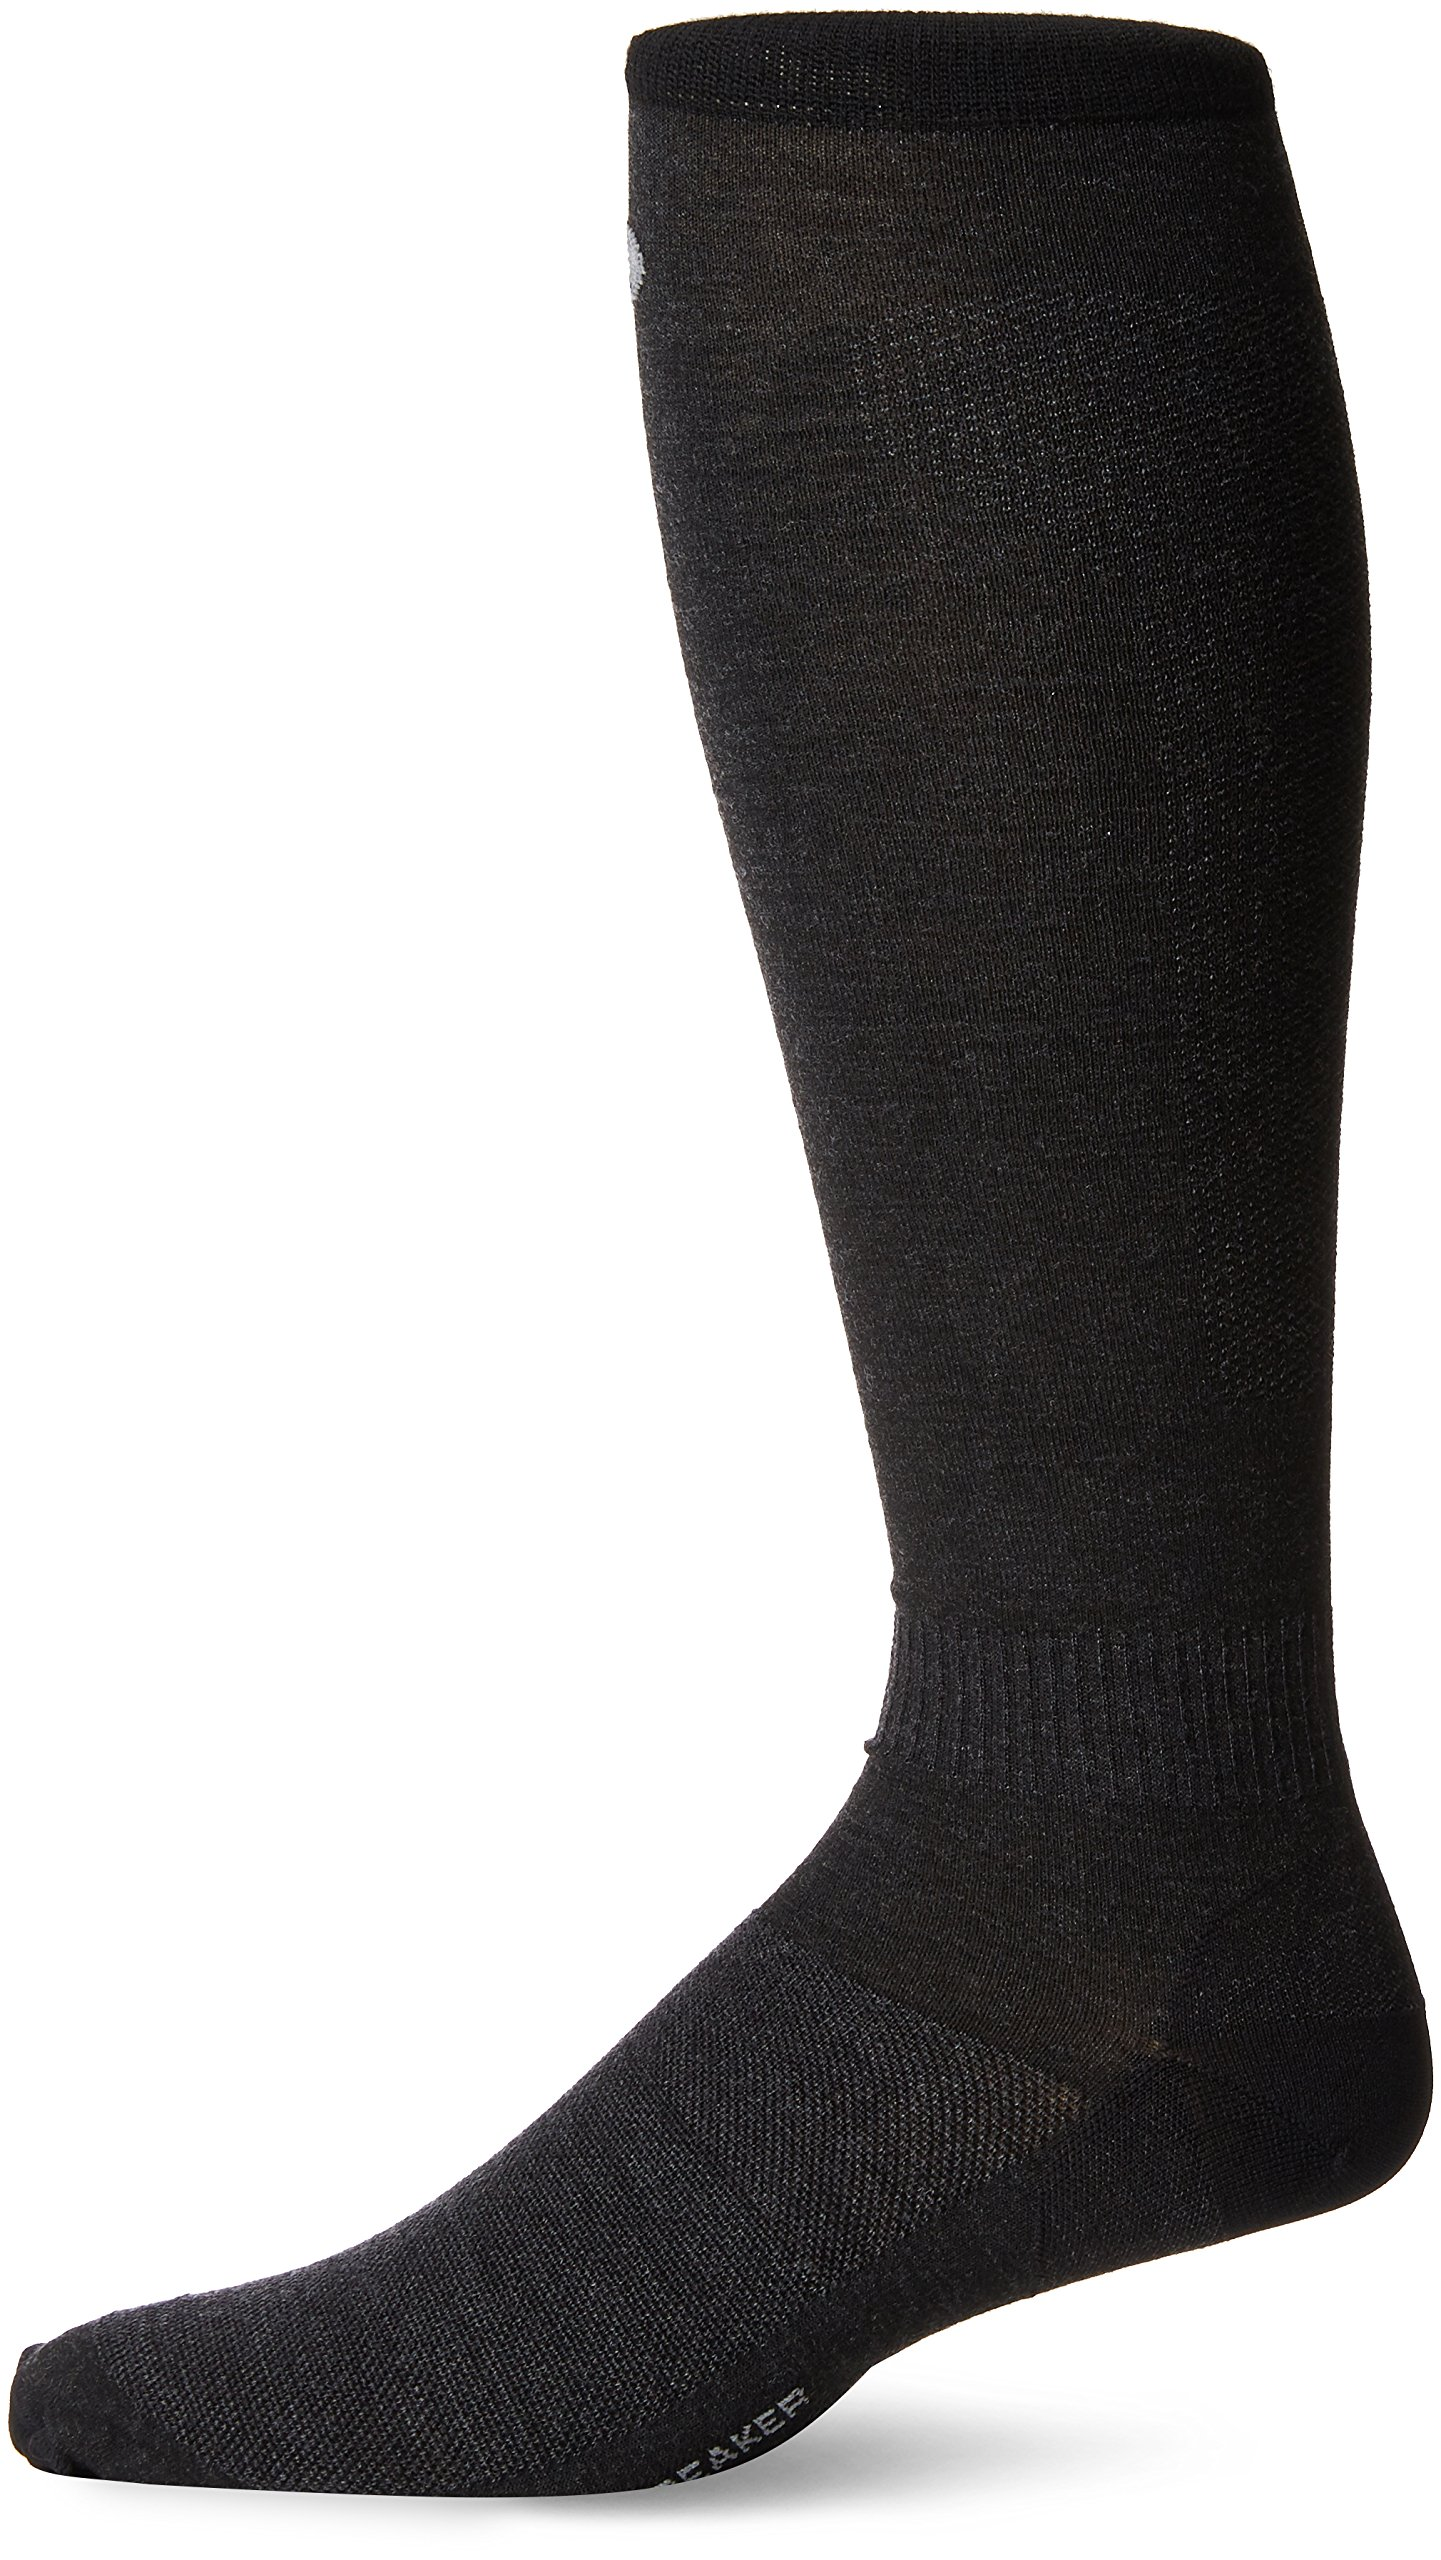 Icebreaker Merino Men's Snow Light Liner OTC Socks, Small, Black by Icebreaker Merino